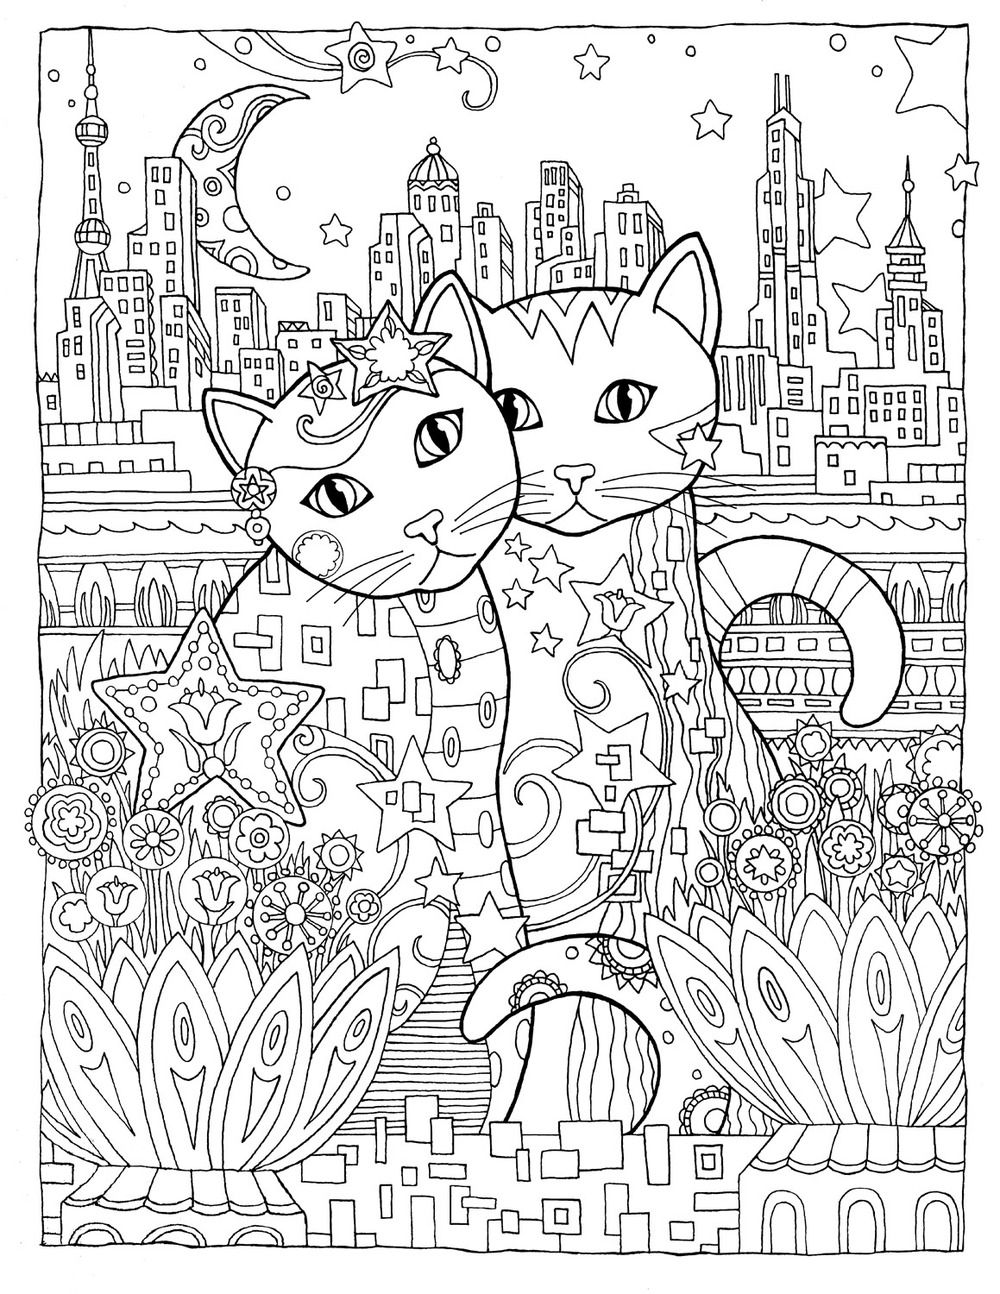 creative cats colouring book on the town by marjorie sarnat